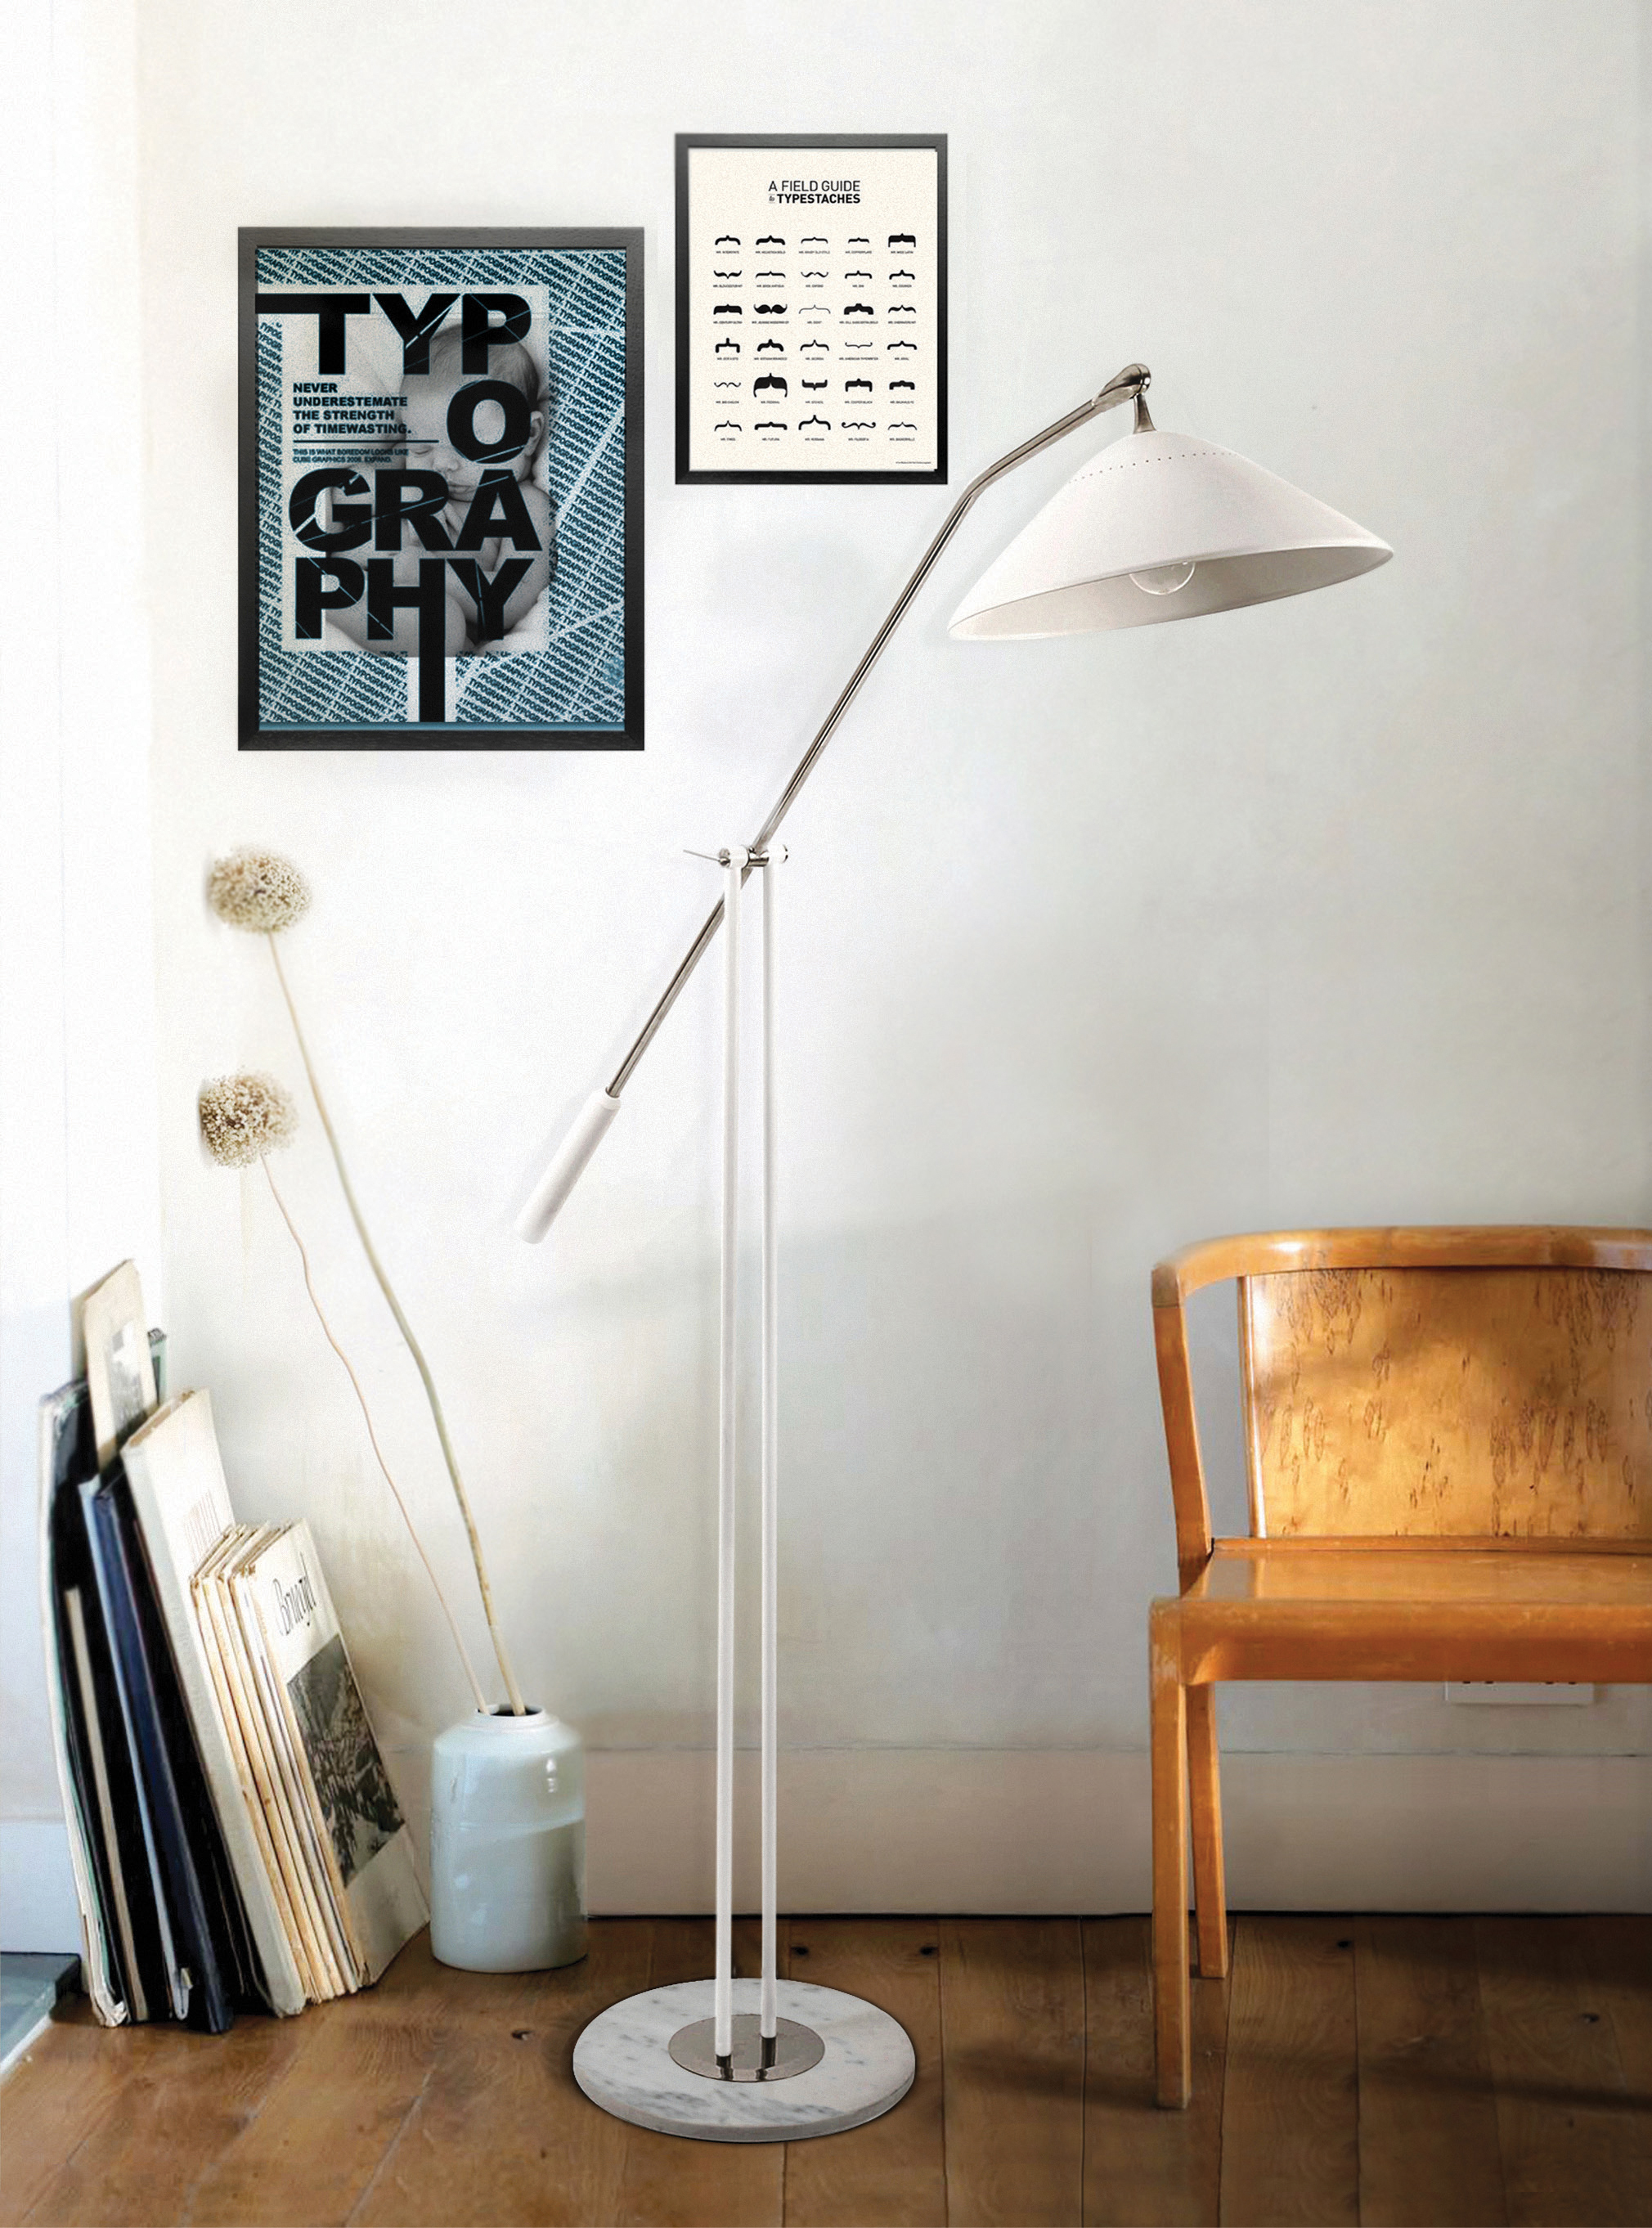 Bright Ideas The Perfect Floor Lamp for Your Scandinavian Design 1 modern floor lamp Bright Ideas: The Perfect Modern Floor Lamp for A Scandinavian Design Bright Ideas The Perfect Modern Floor Lamp for Your Scandinavian Design 4